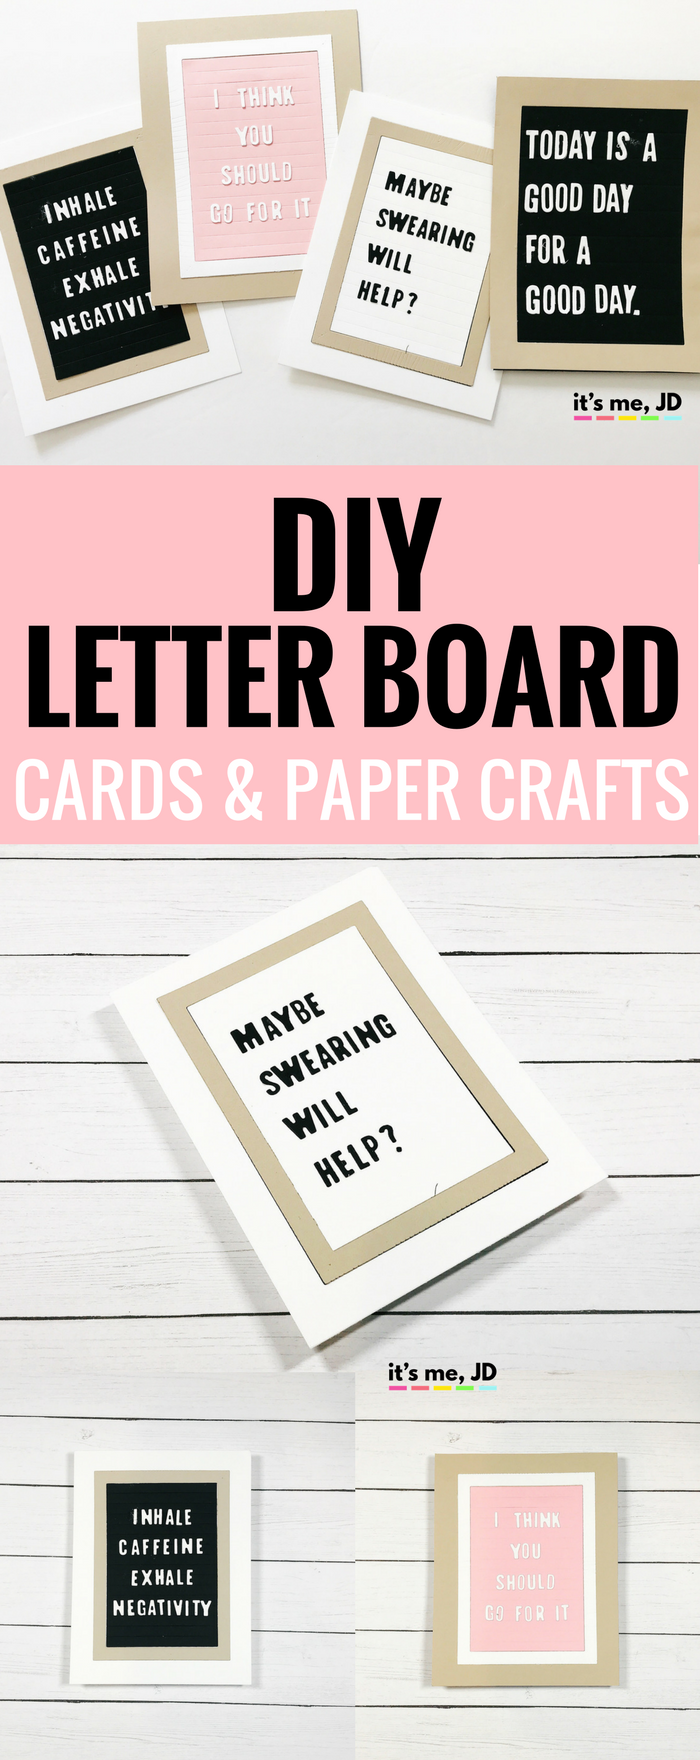 Diy Letter Board Cards And Paper Crafts Ideas Diy Letter Board Paper Crafts Lettering